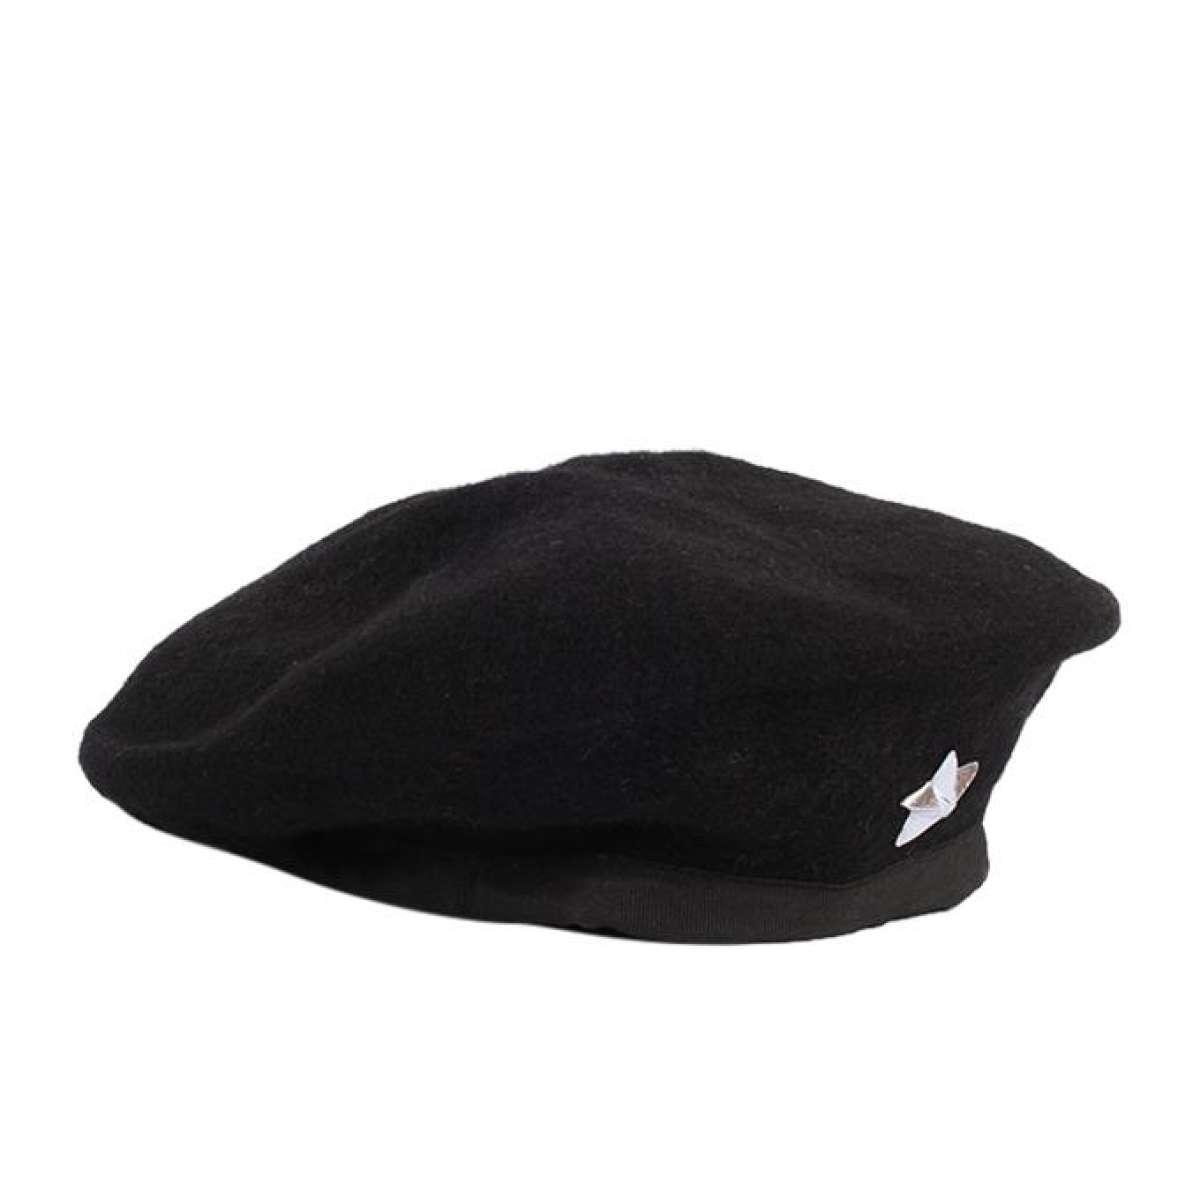 e905a6e5b80 Men s Hats In Bangladesh At Best Price - Daraz.com.bd